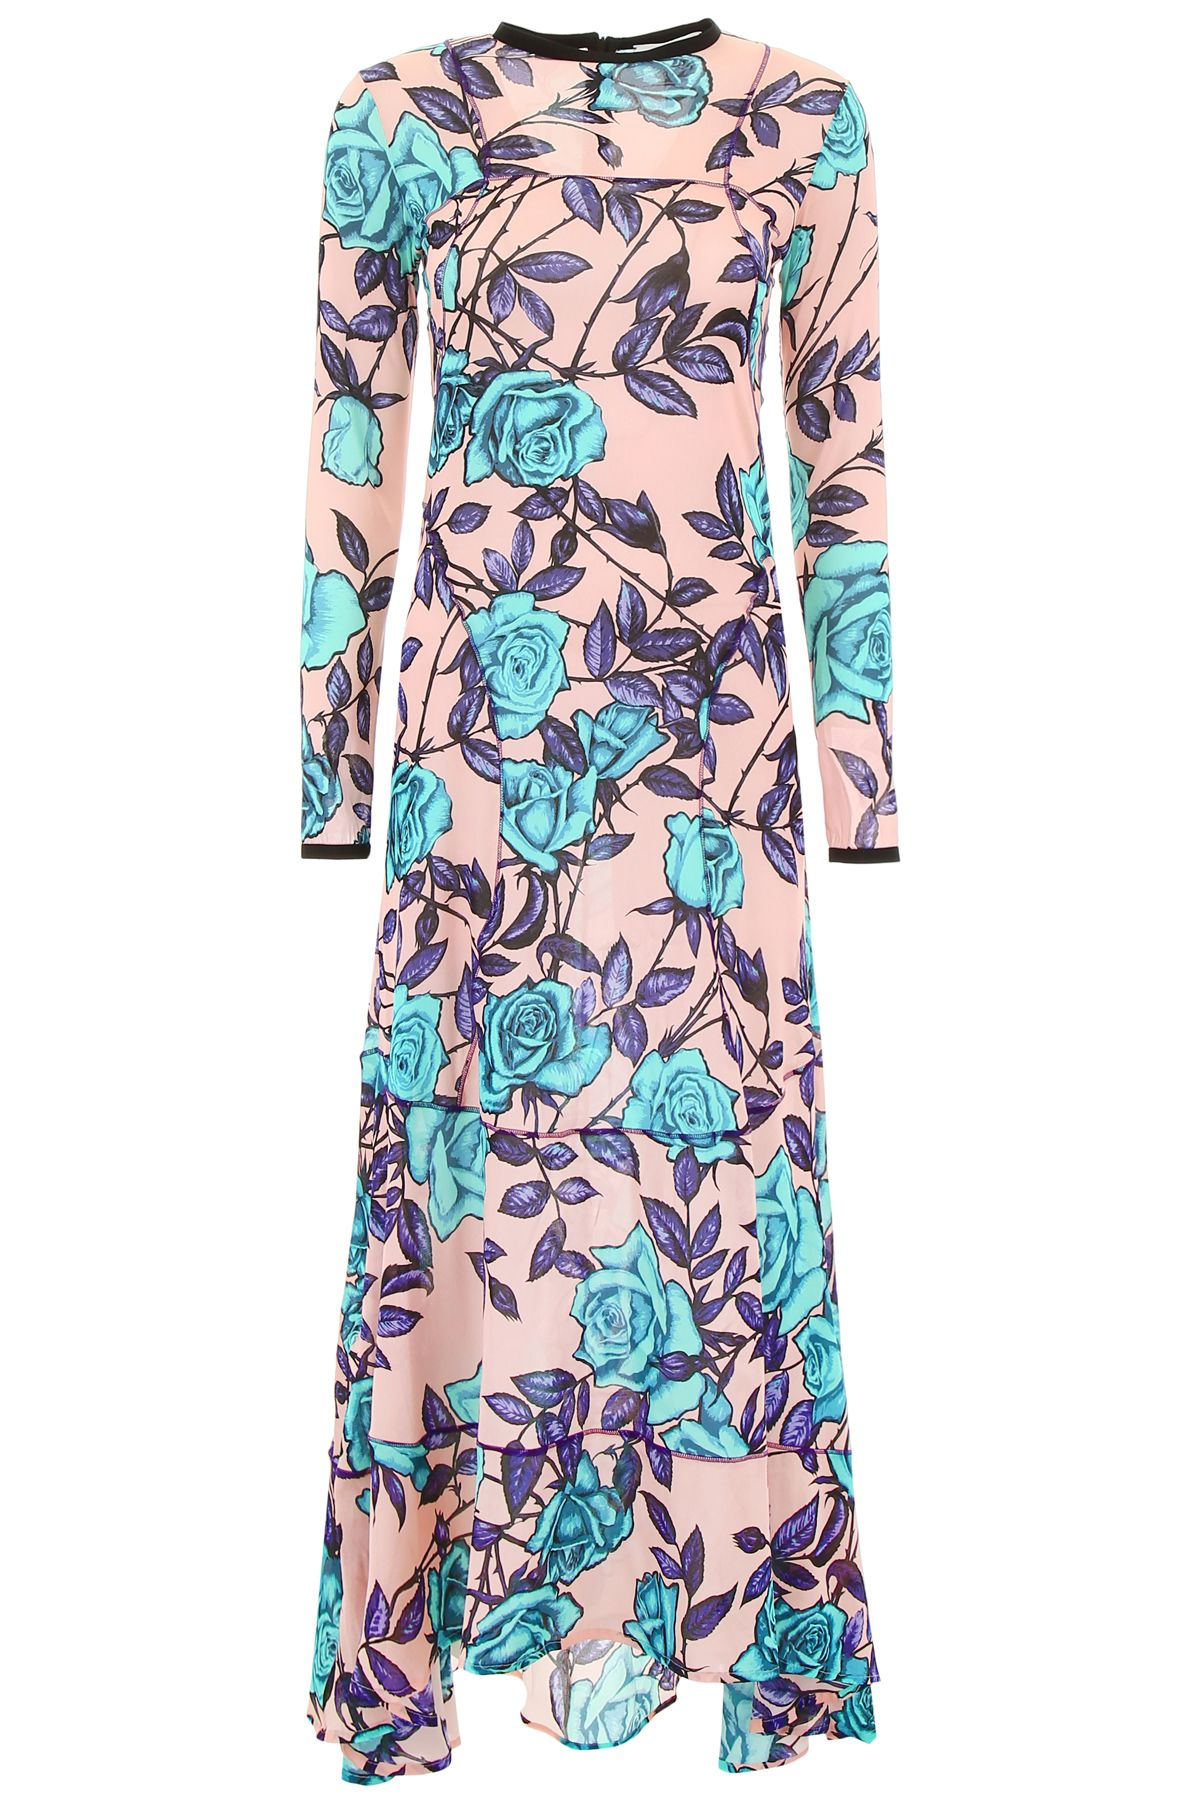 SCRAMBLED EGO Long Dress With Roses in Pink Violet